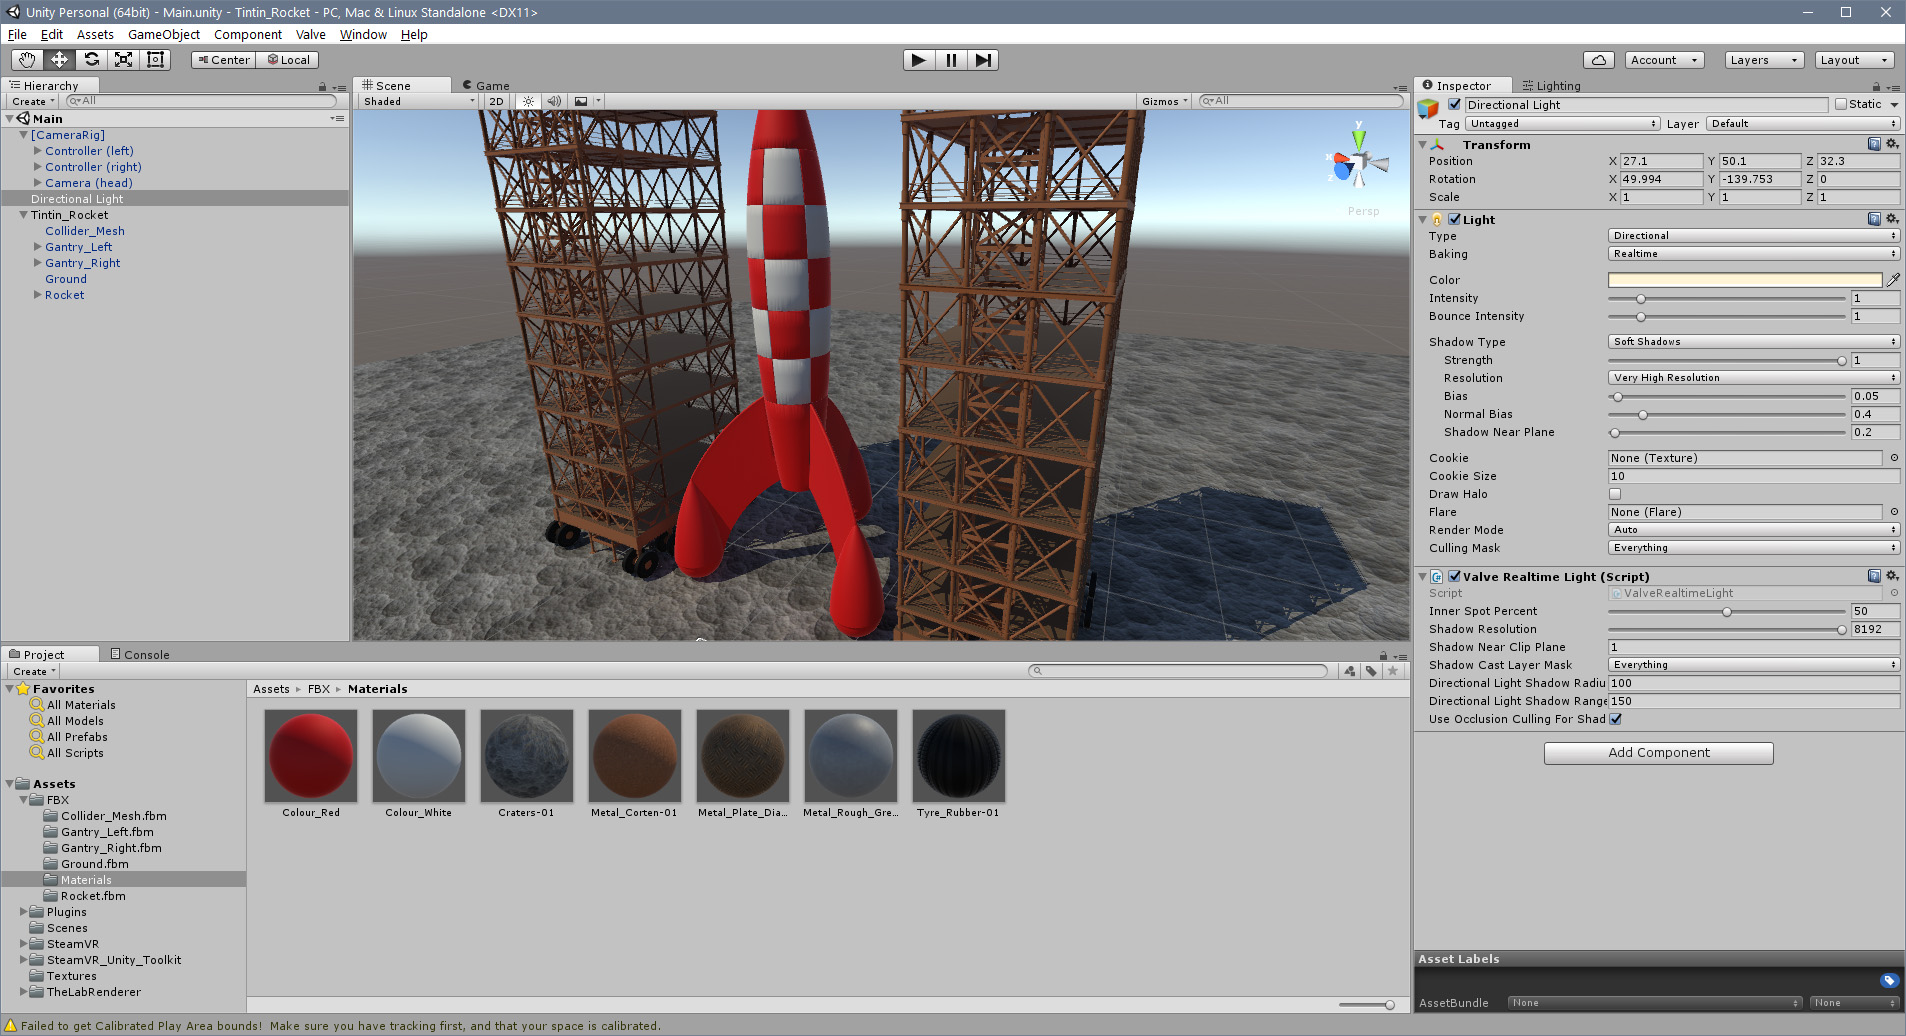 MicroStation to Unity - FBX Export Bottlenecks - MicroStation Forum